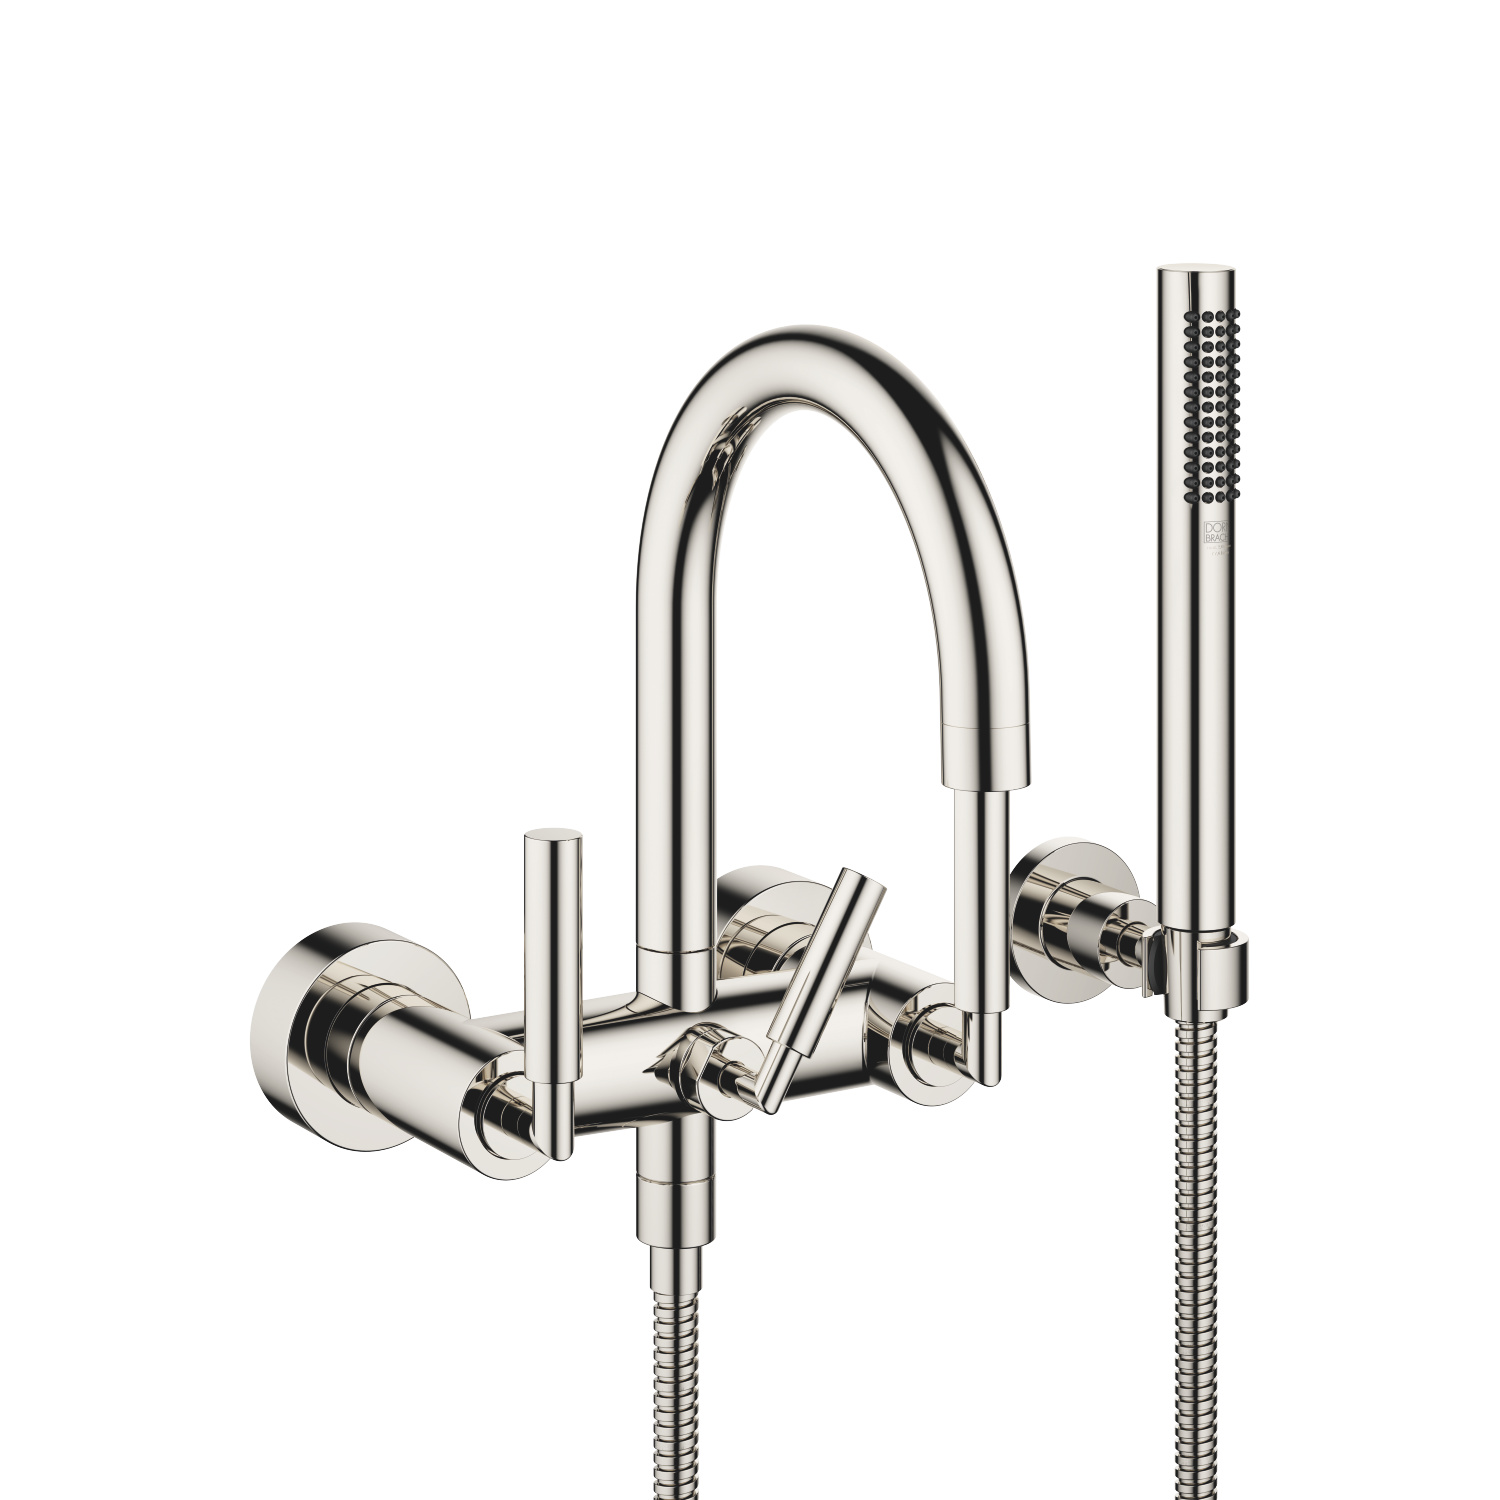 Tub mixer for wall-mounted installation with hand shower set - platinum